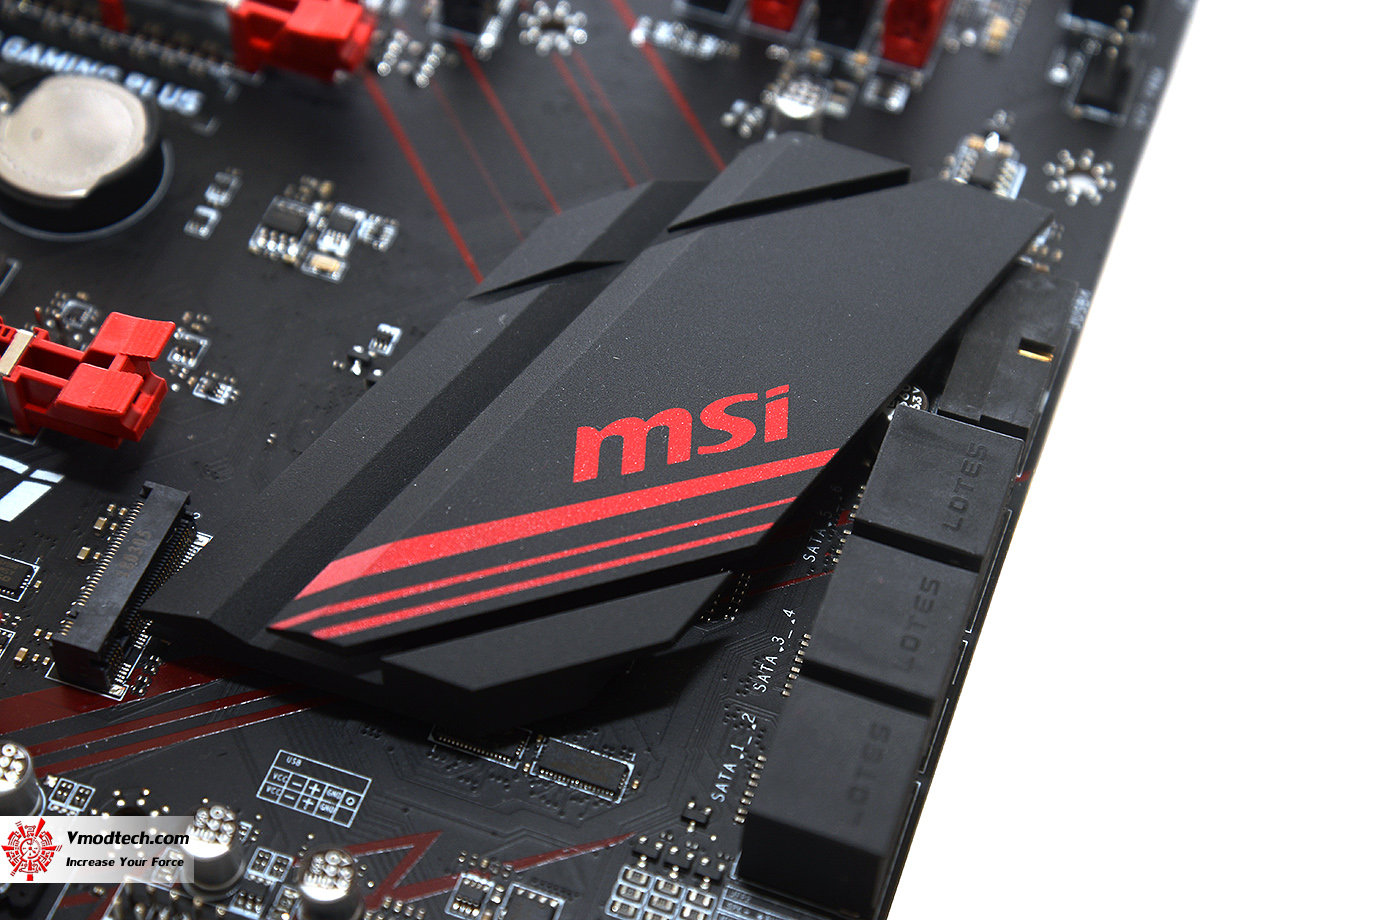 dsc 9562 MSI X470 GAMING PLUS REVIEW